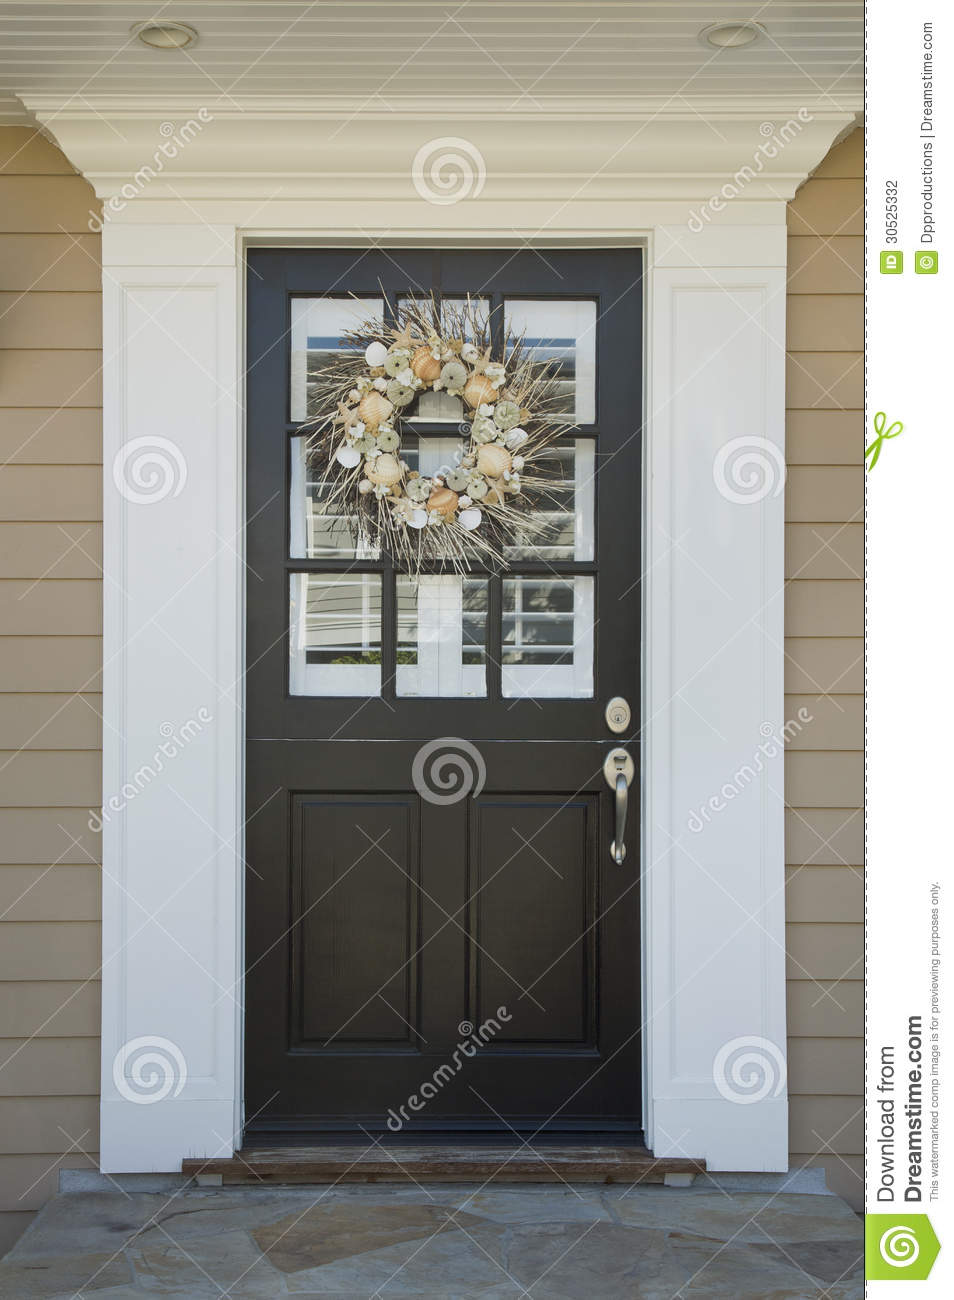 Front Door Of An Upscale Home Stock Photo Image Of Exterior Front